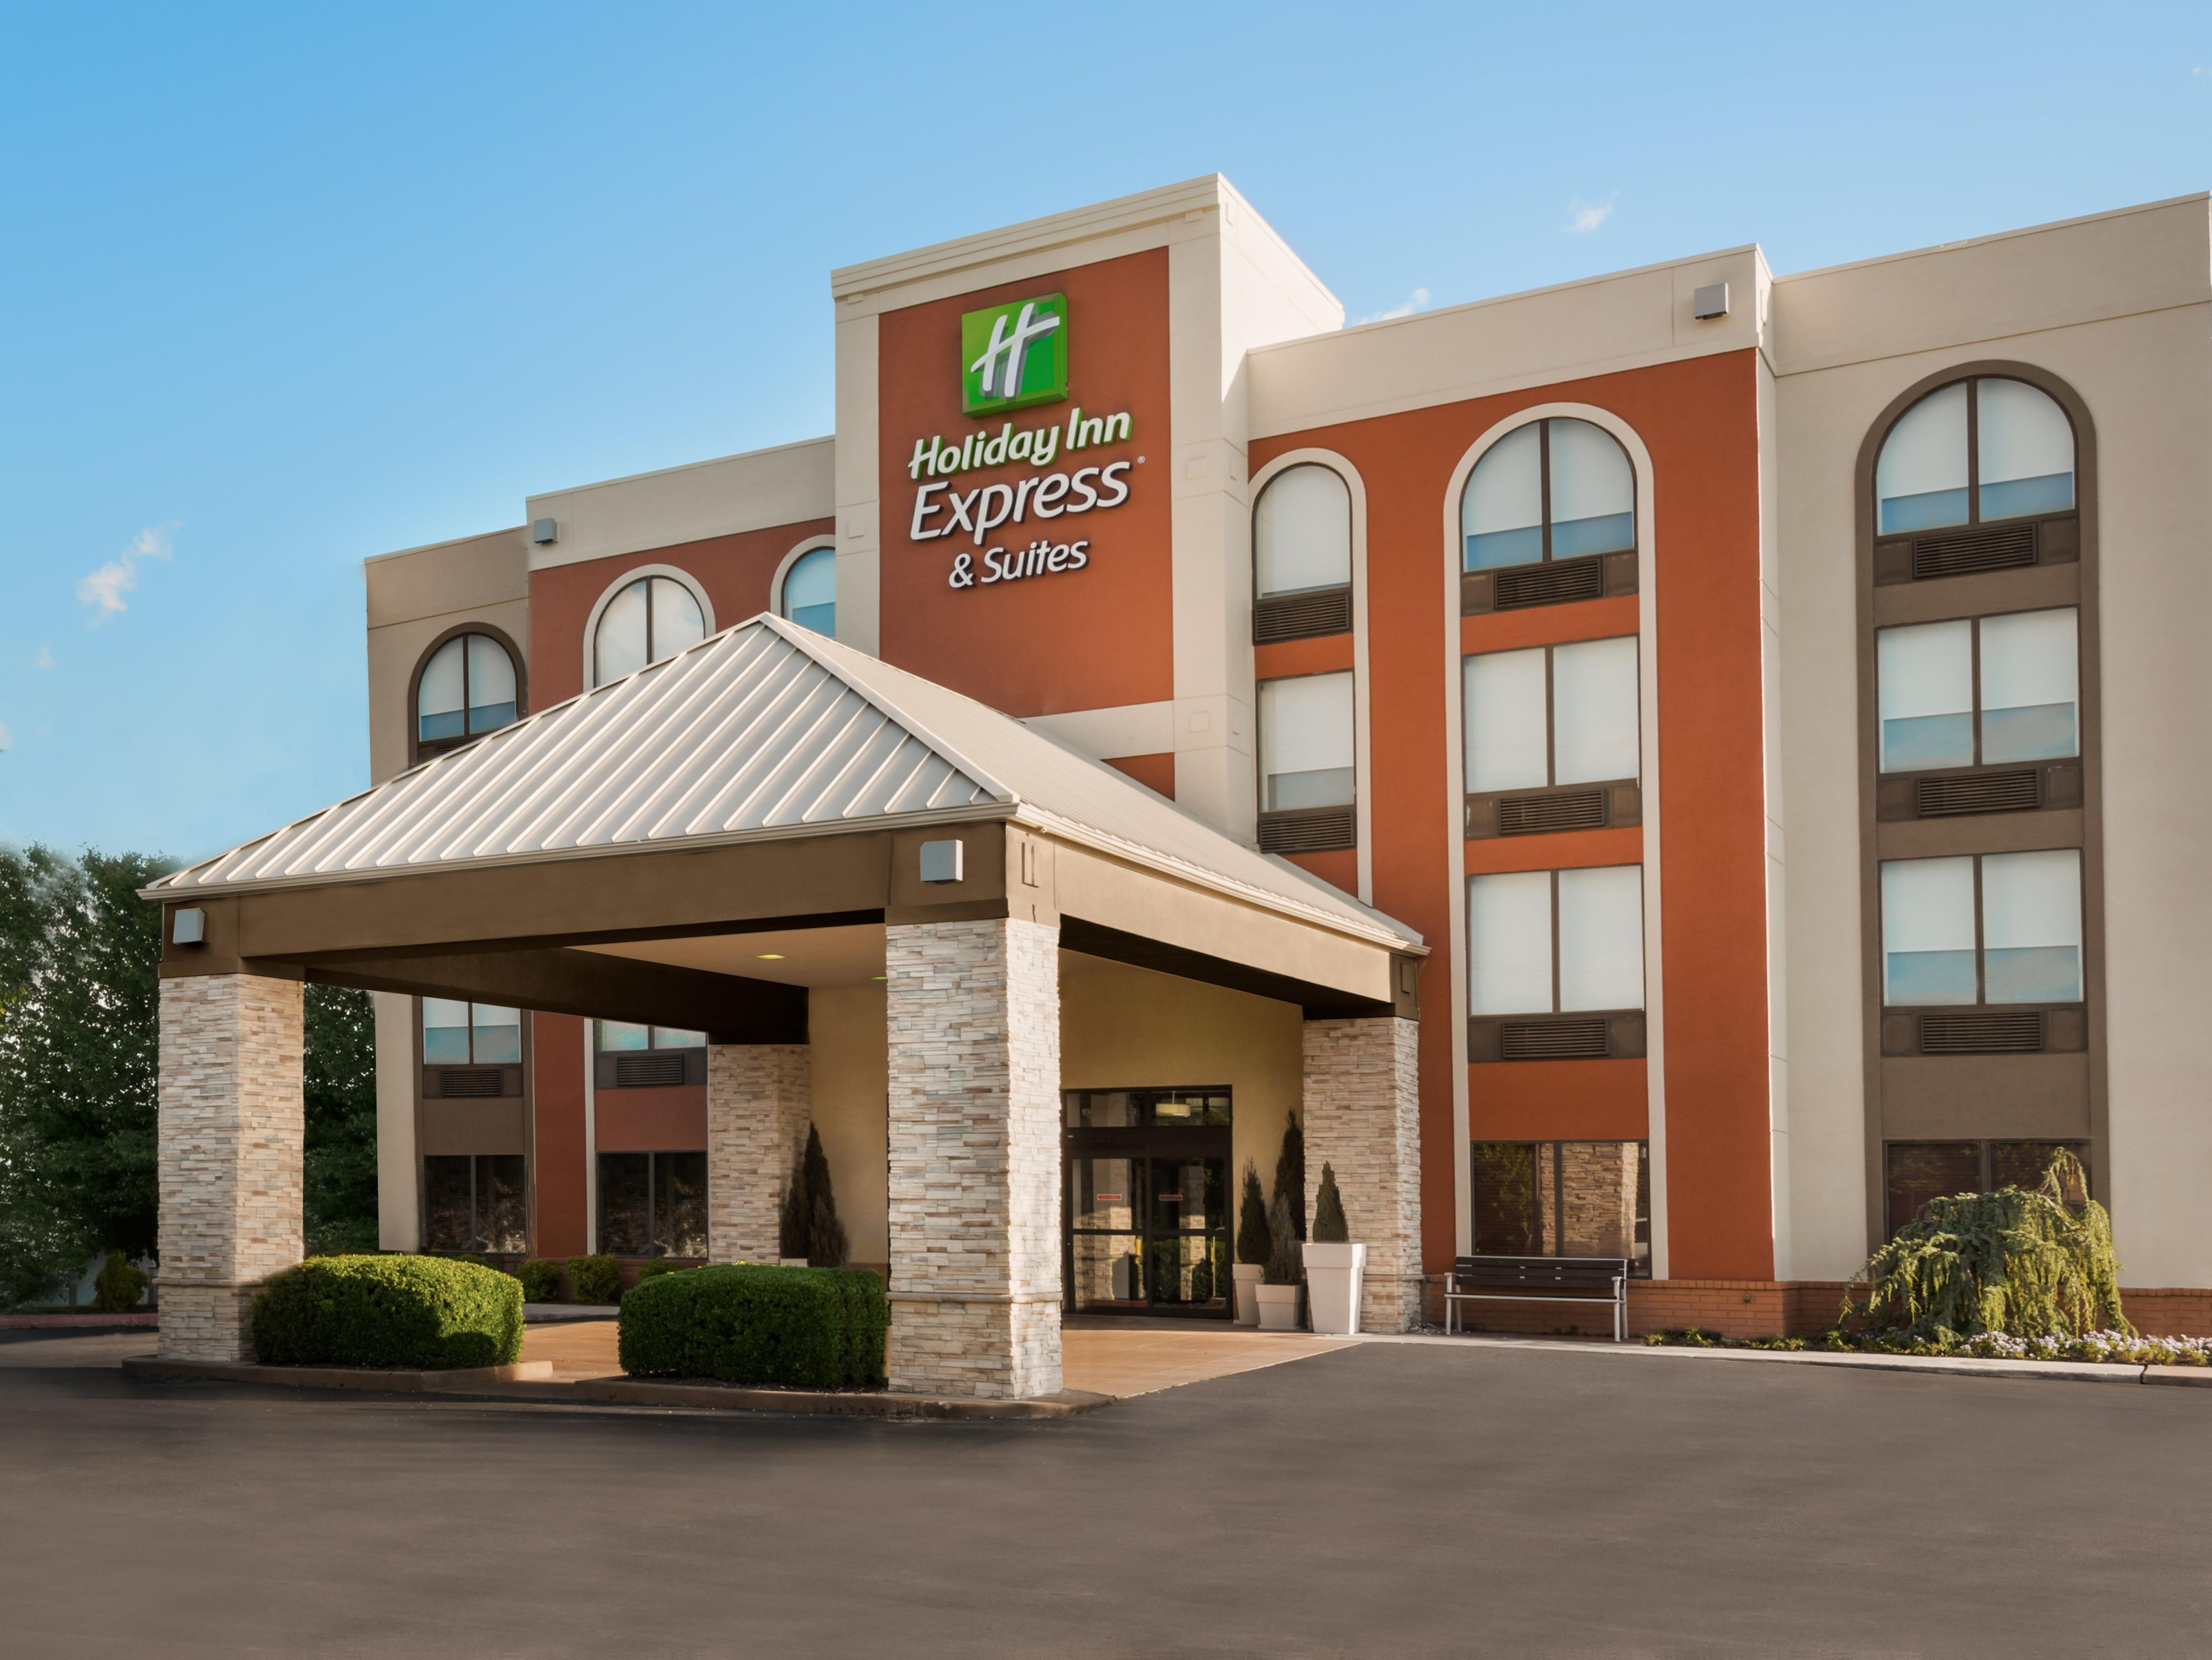 Holiday Inn Express & Suites Bentonville Hotel by IHG on